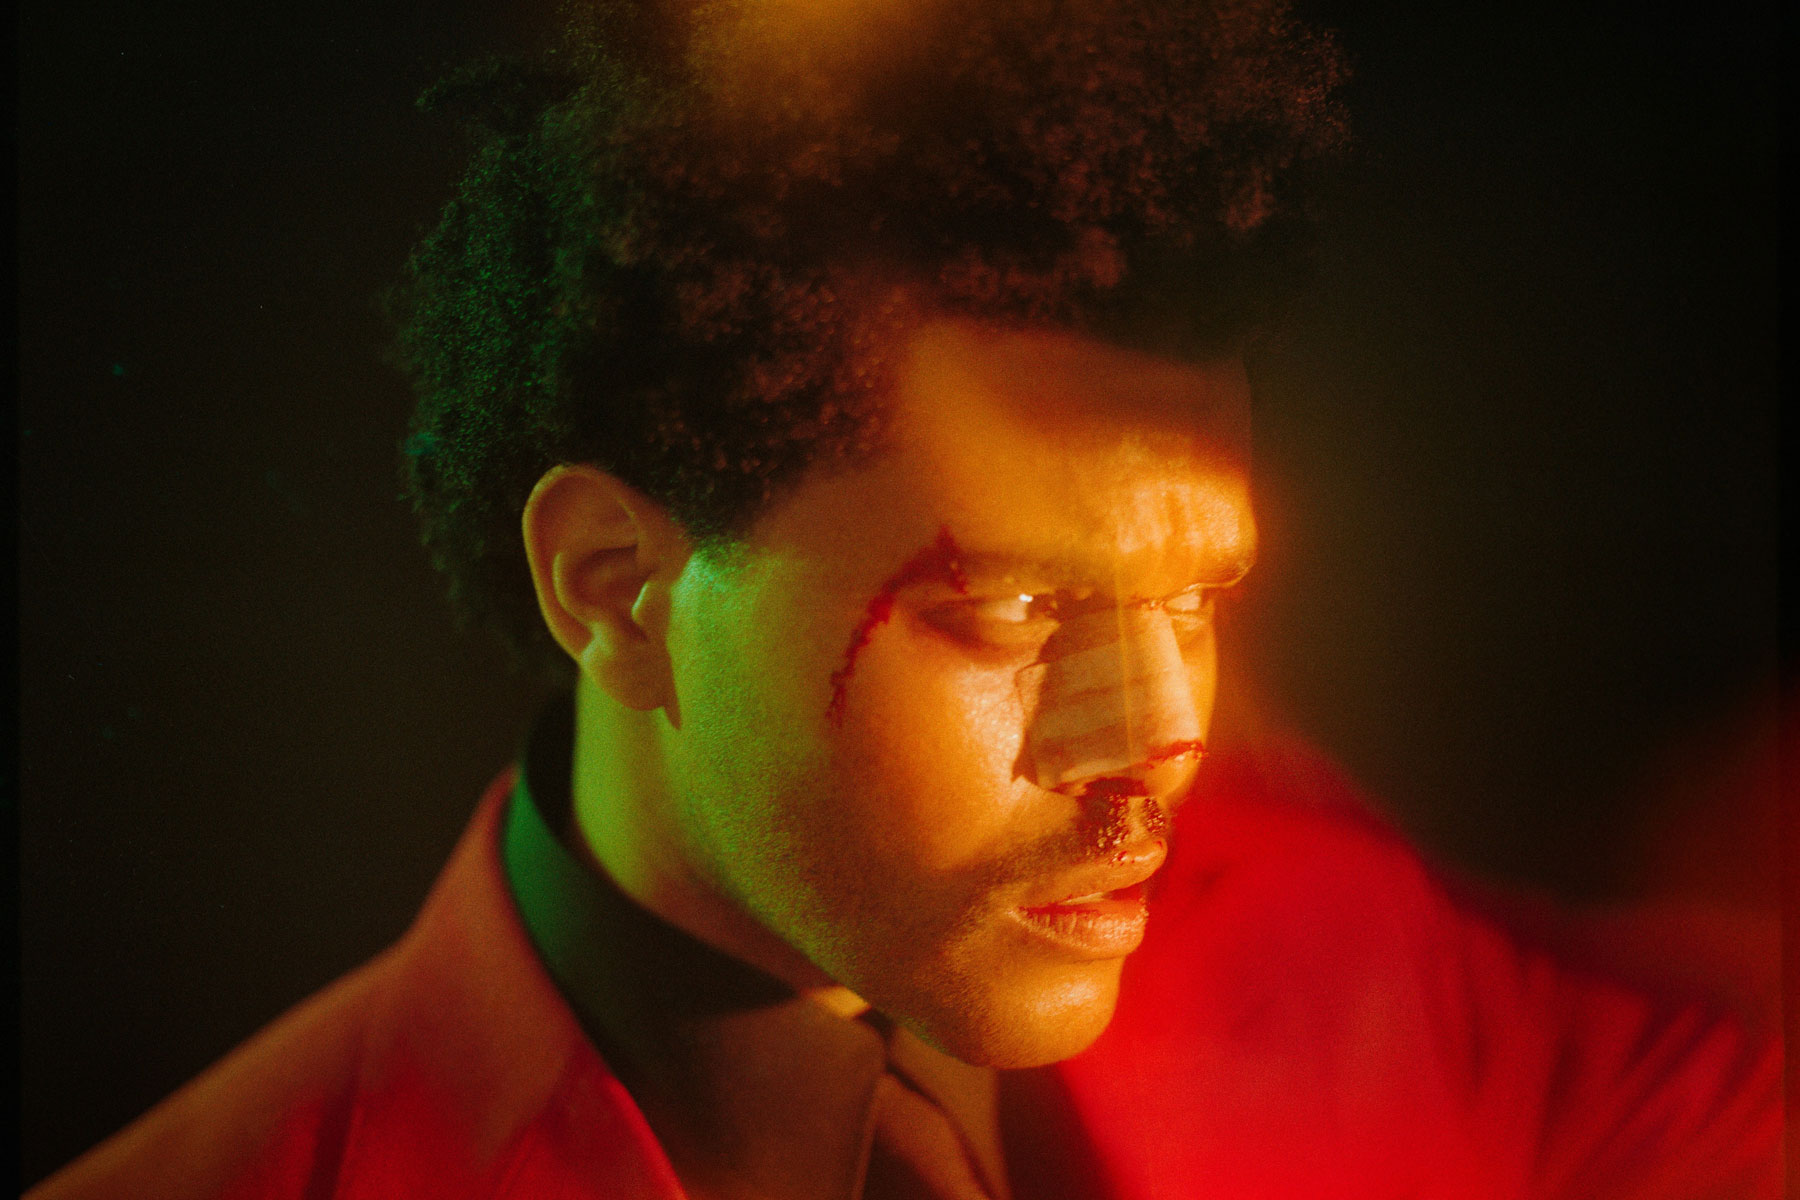 The Weeknd Wants to Give the World 'Philip K.' Dick - EpicNews